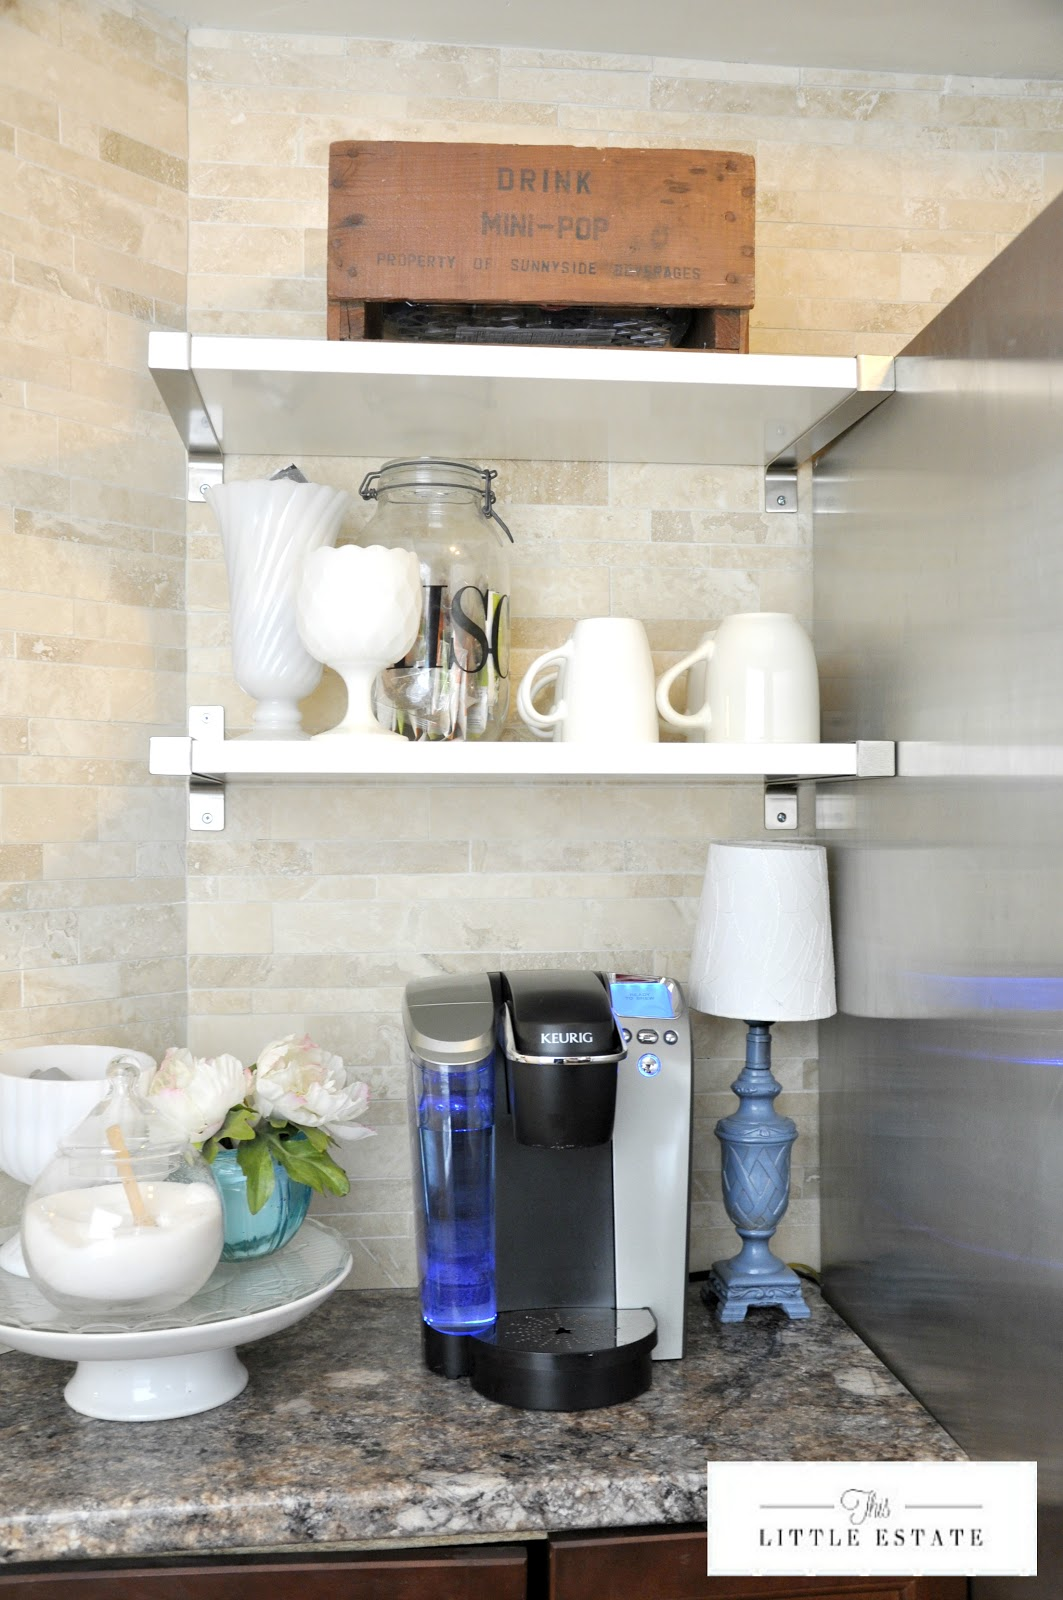 Everything YOU need to know for a DIY kitchen remodel. | This Little on kitchen eating area ideas, kitchen library ideas, kitchen refrigerator ideas, kitchen seating area ideas, kitchen microwave ideas, kitchen bathroom ideas, kitchen storage ideas, kitchen dining area ideas, kitchen breakfast area ideas, kitchen bar area ideas,